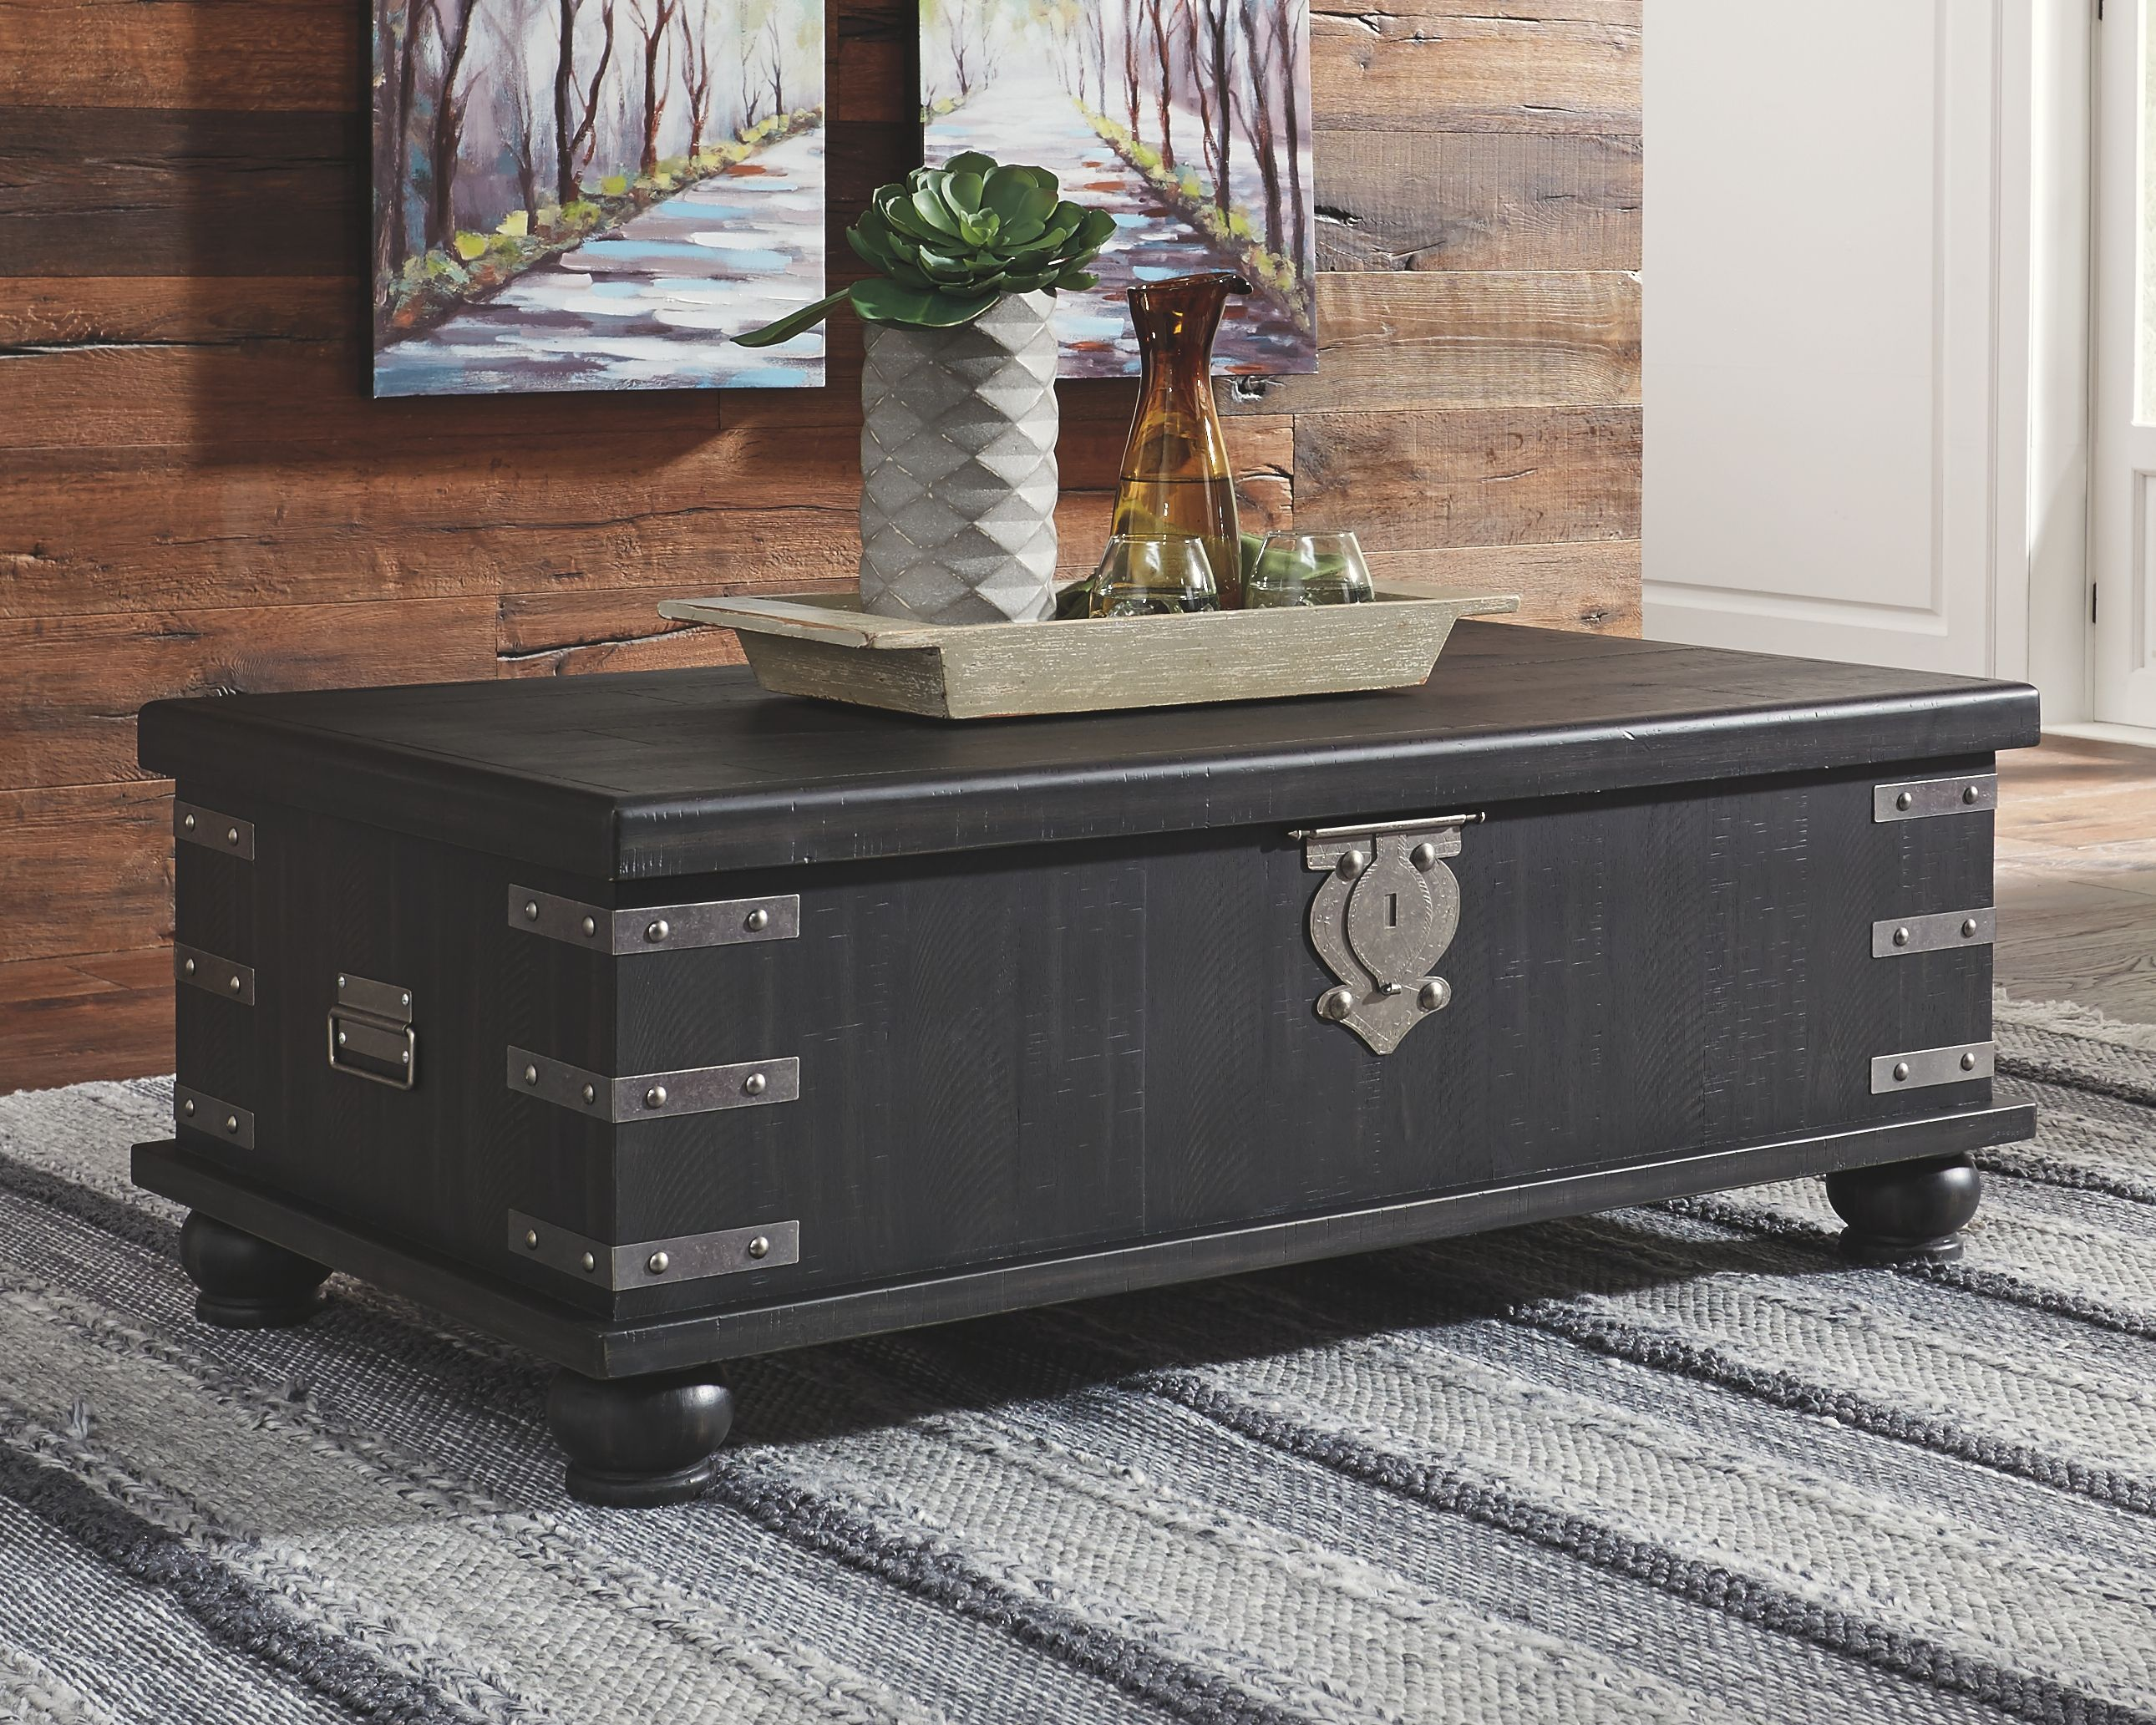 Delmar Coffee Table With Lift Top Ashley Furniture Homestore In 2021 Coffee Table Styling Brown Area Rugs Coffee Table [ 2065 x 2581 Pixel ]